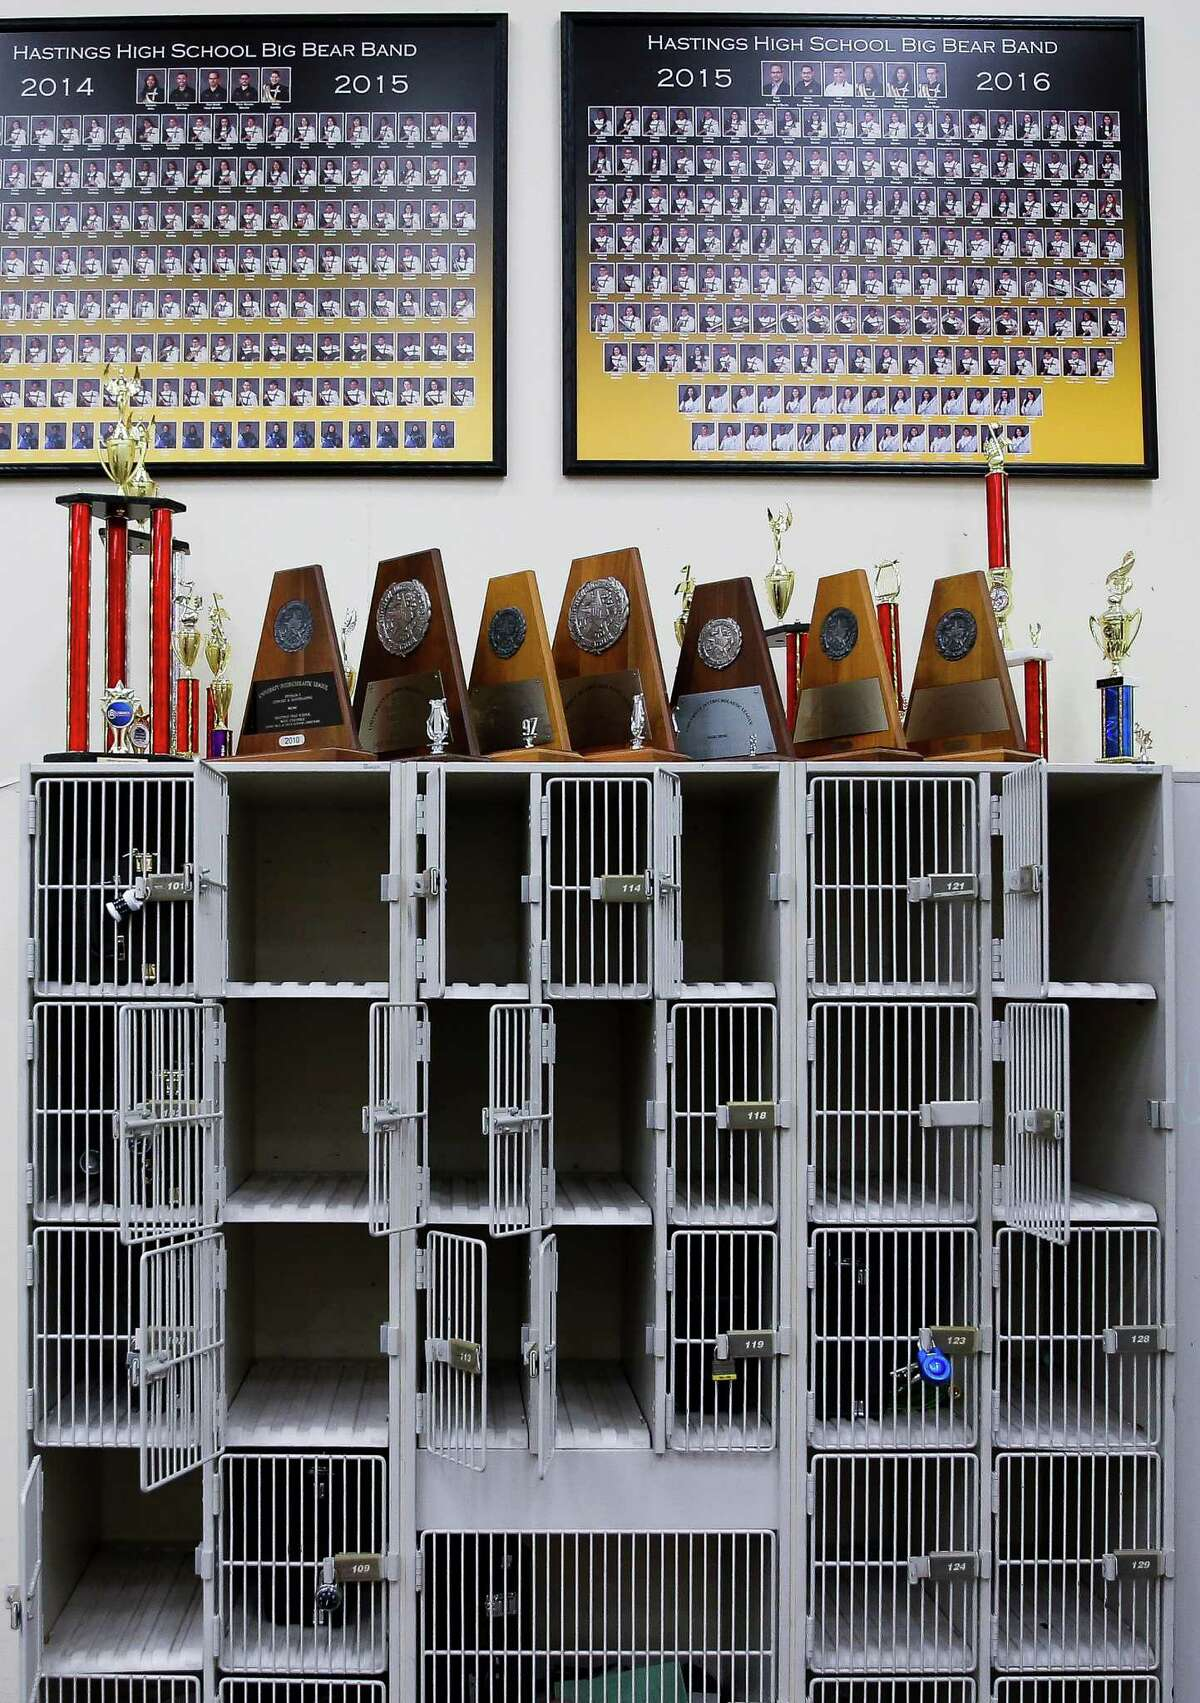 Instrument storage lockers at Hastings High School sit empty after someone walked into the band room and stole school-issued instruments.